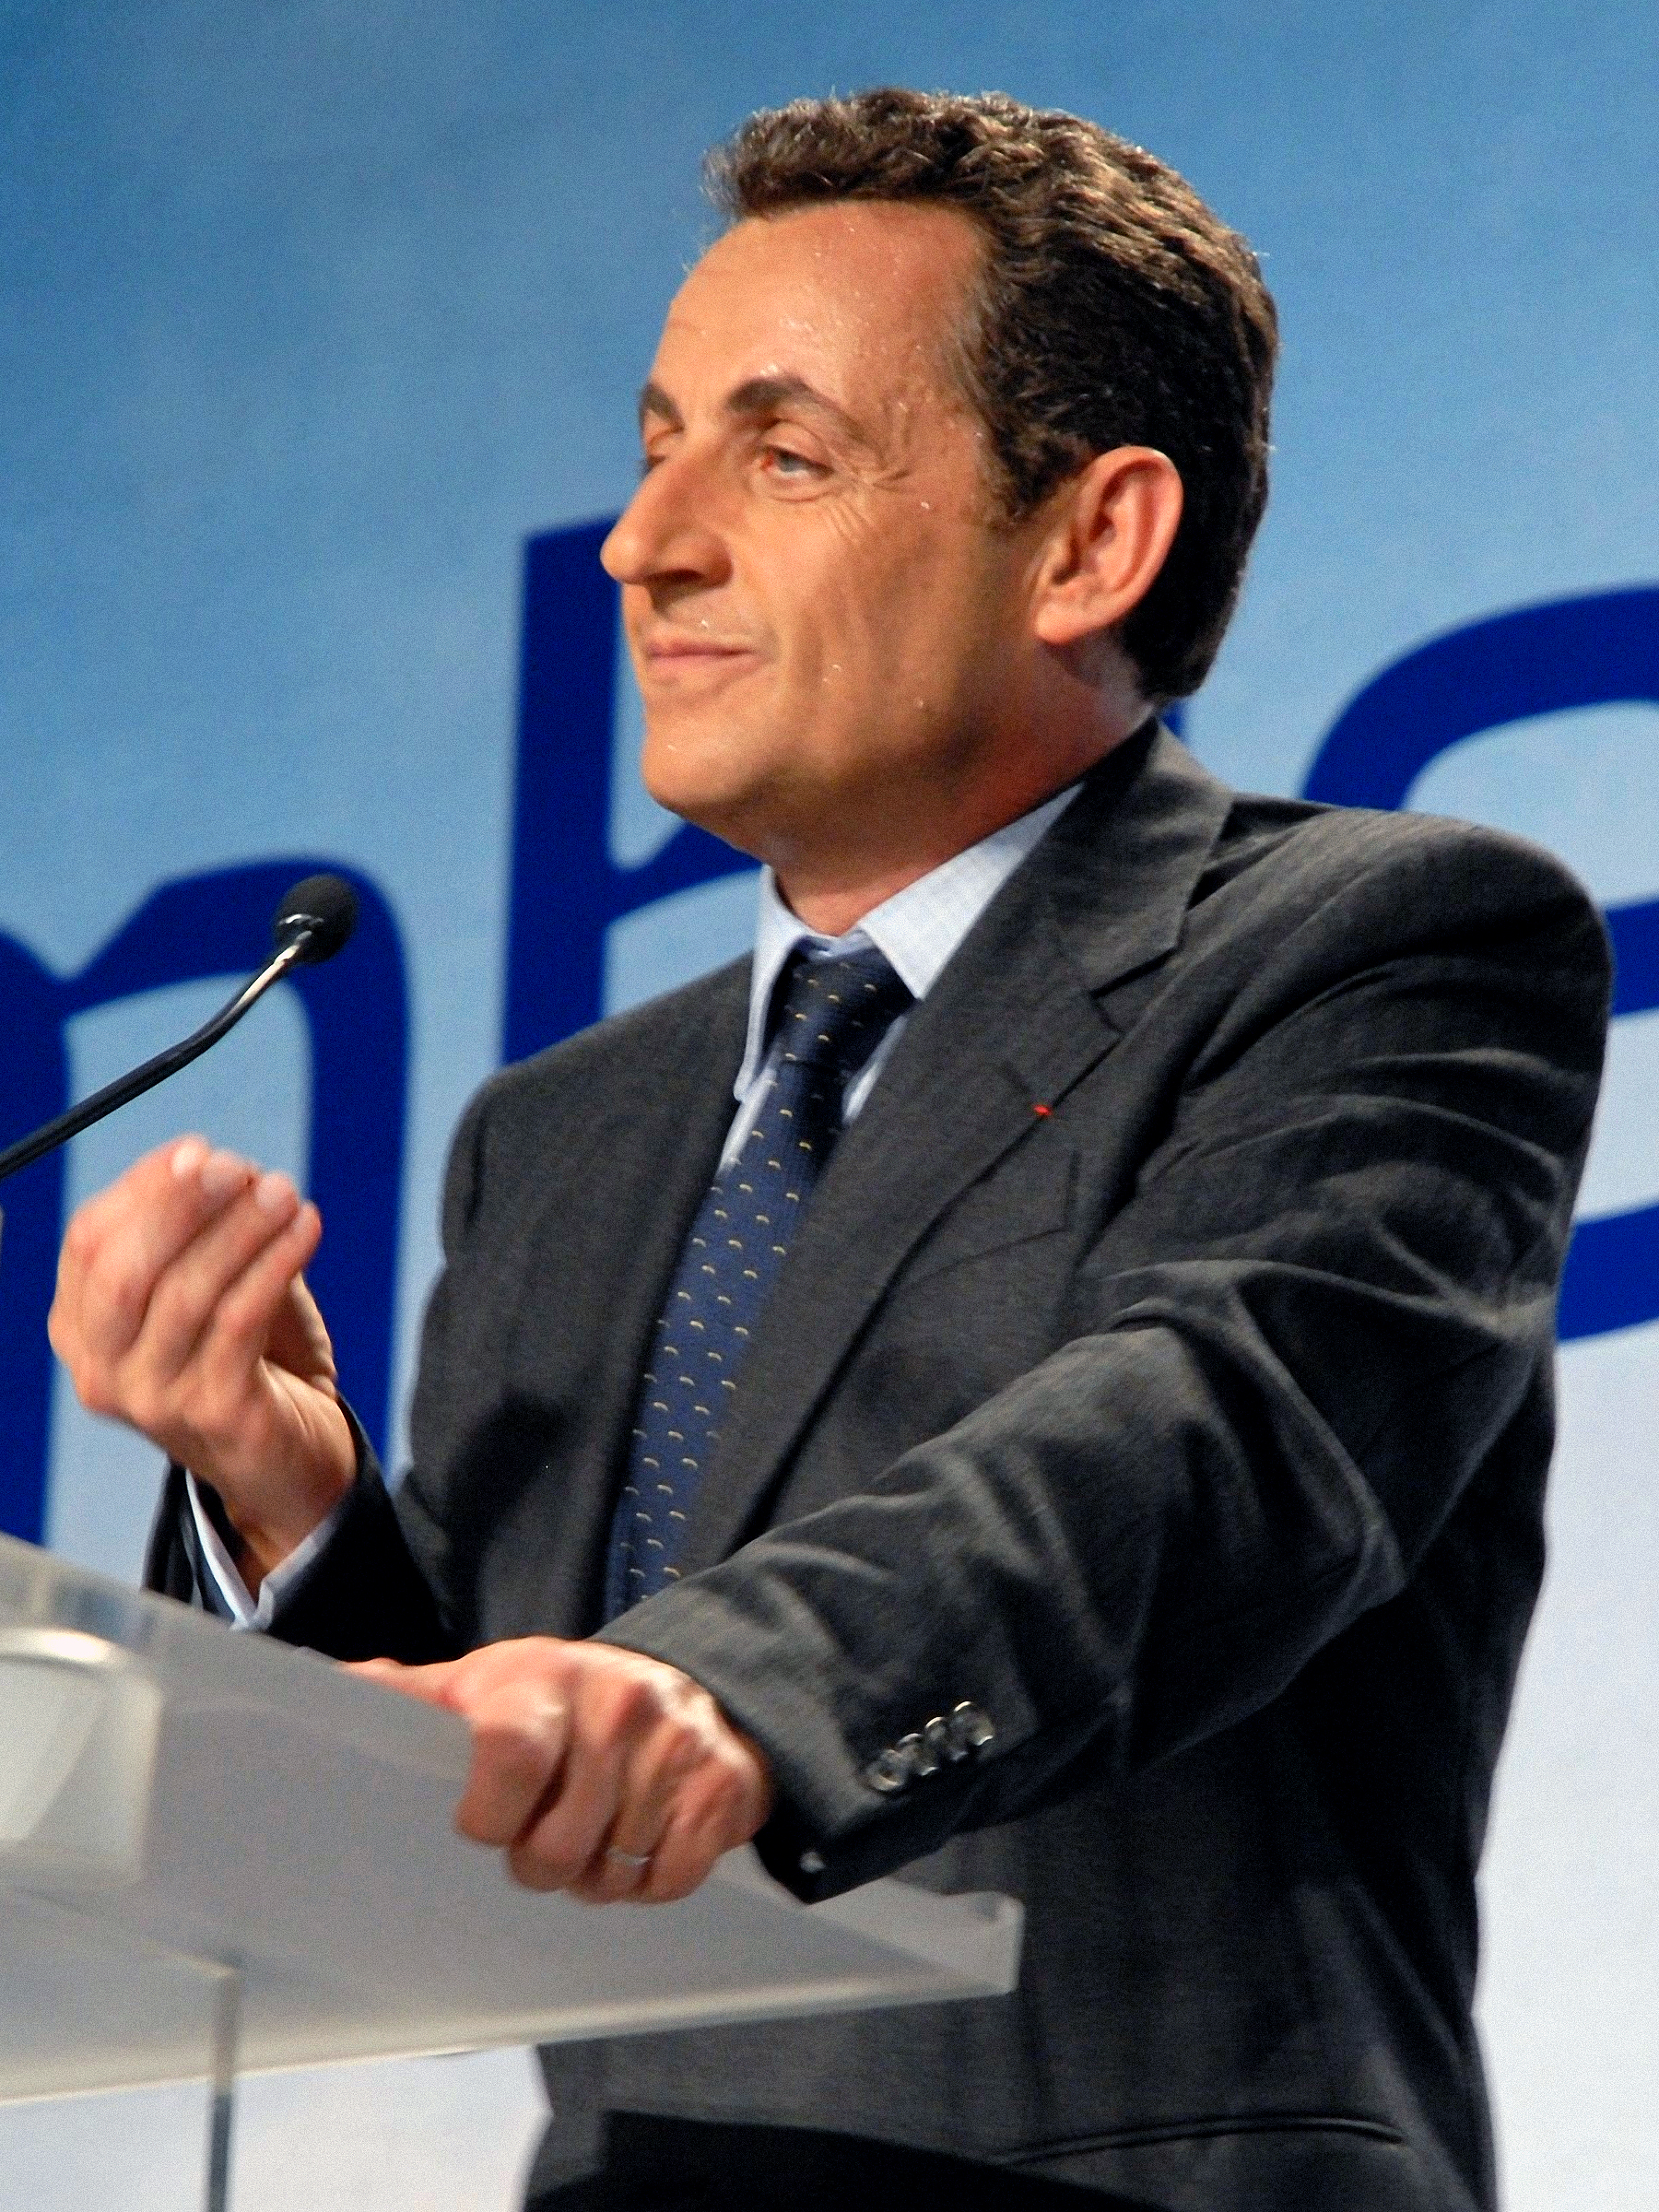 File:Nicolas SARKOZY - SARKOZY meeting in Toulouse for the 2007 French ...